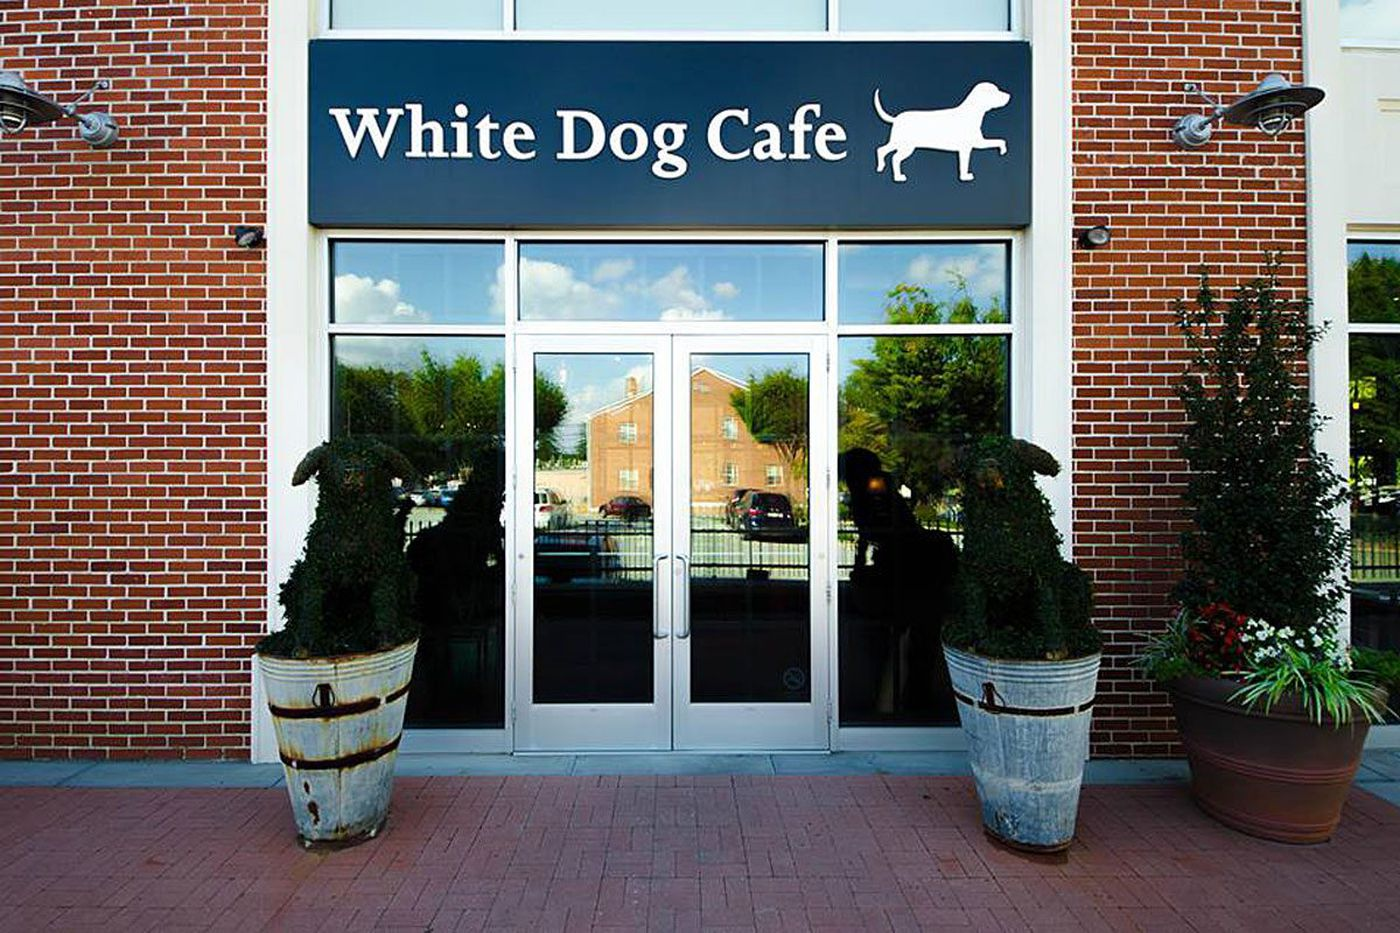 White Dog Cafe in Wayne closed by duct fire